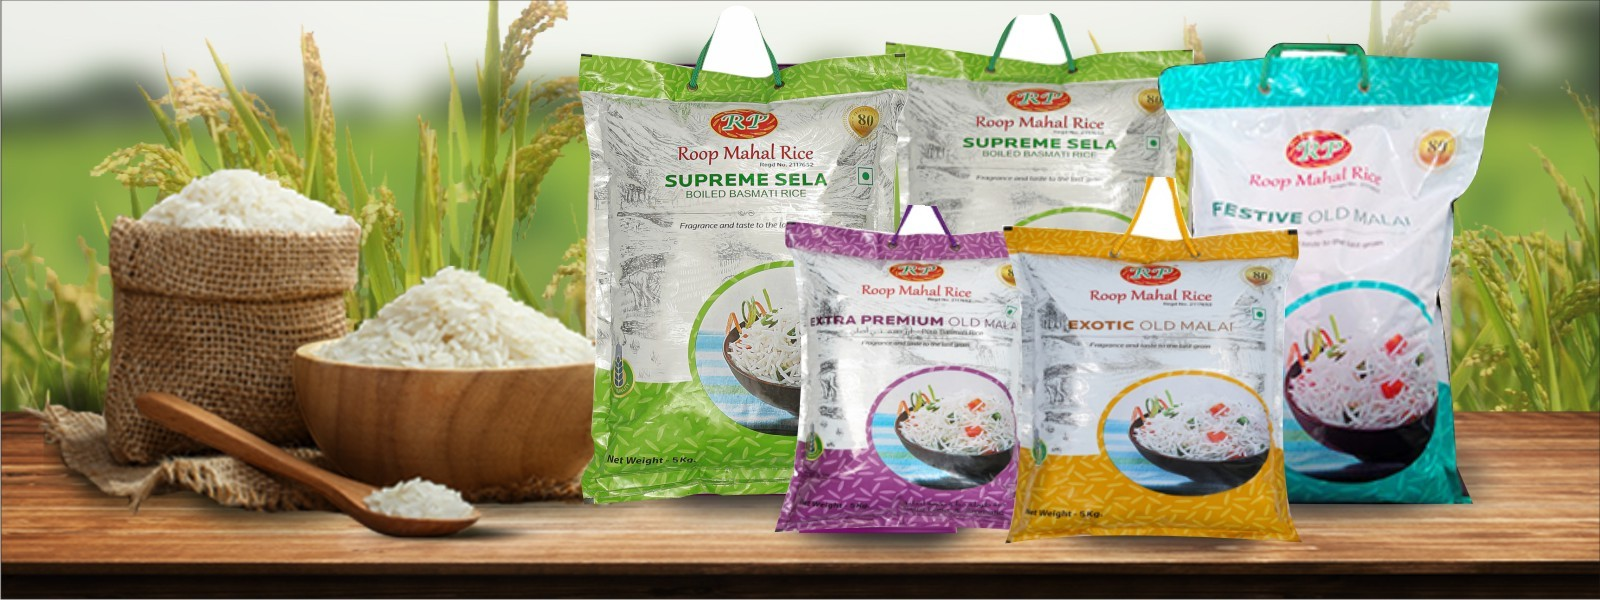 MANAN OVERSEAS PVT. LTD. |  ROOP MAHAL RICE ABOUT US